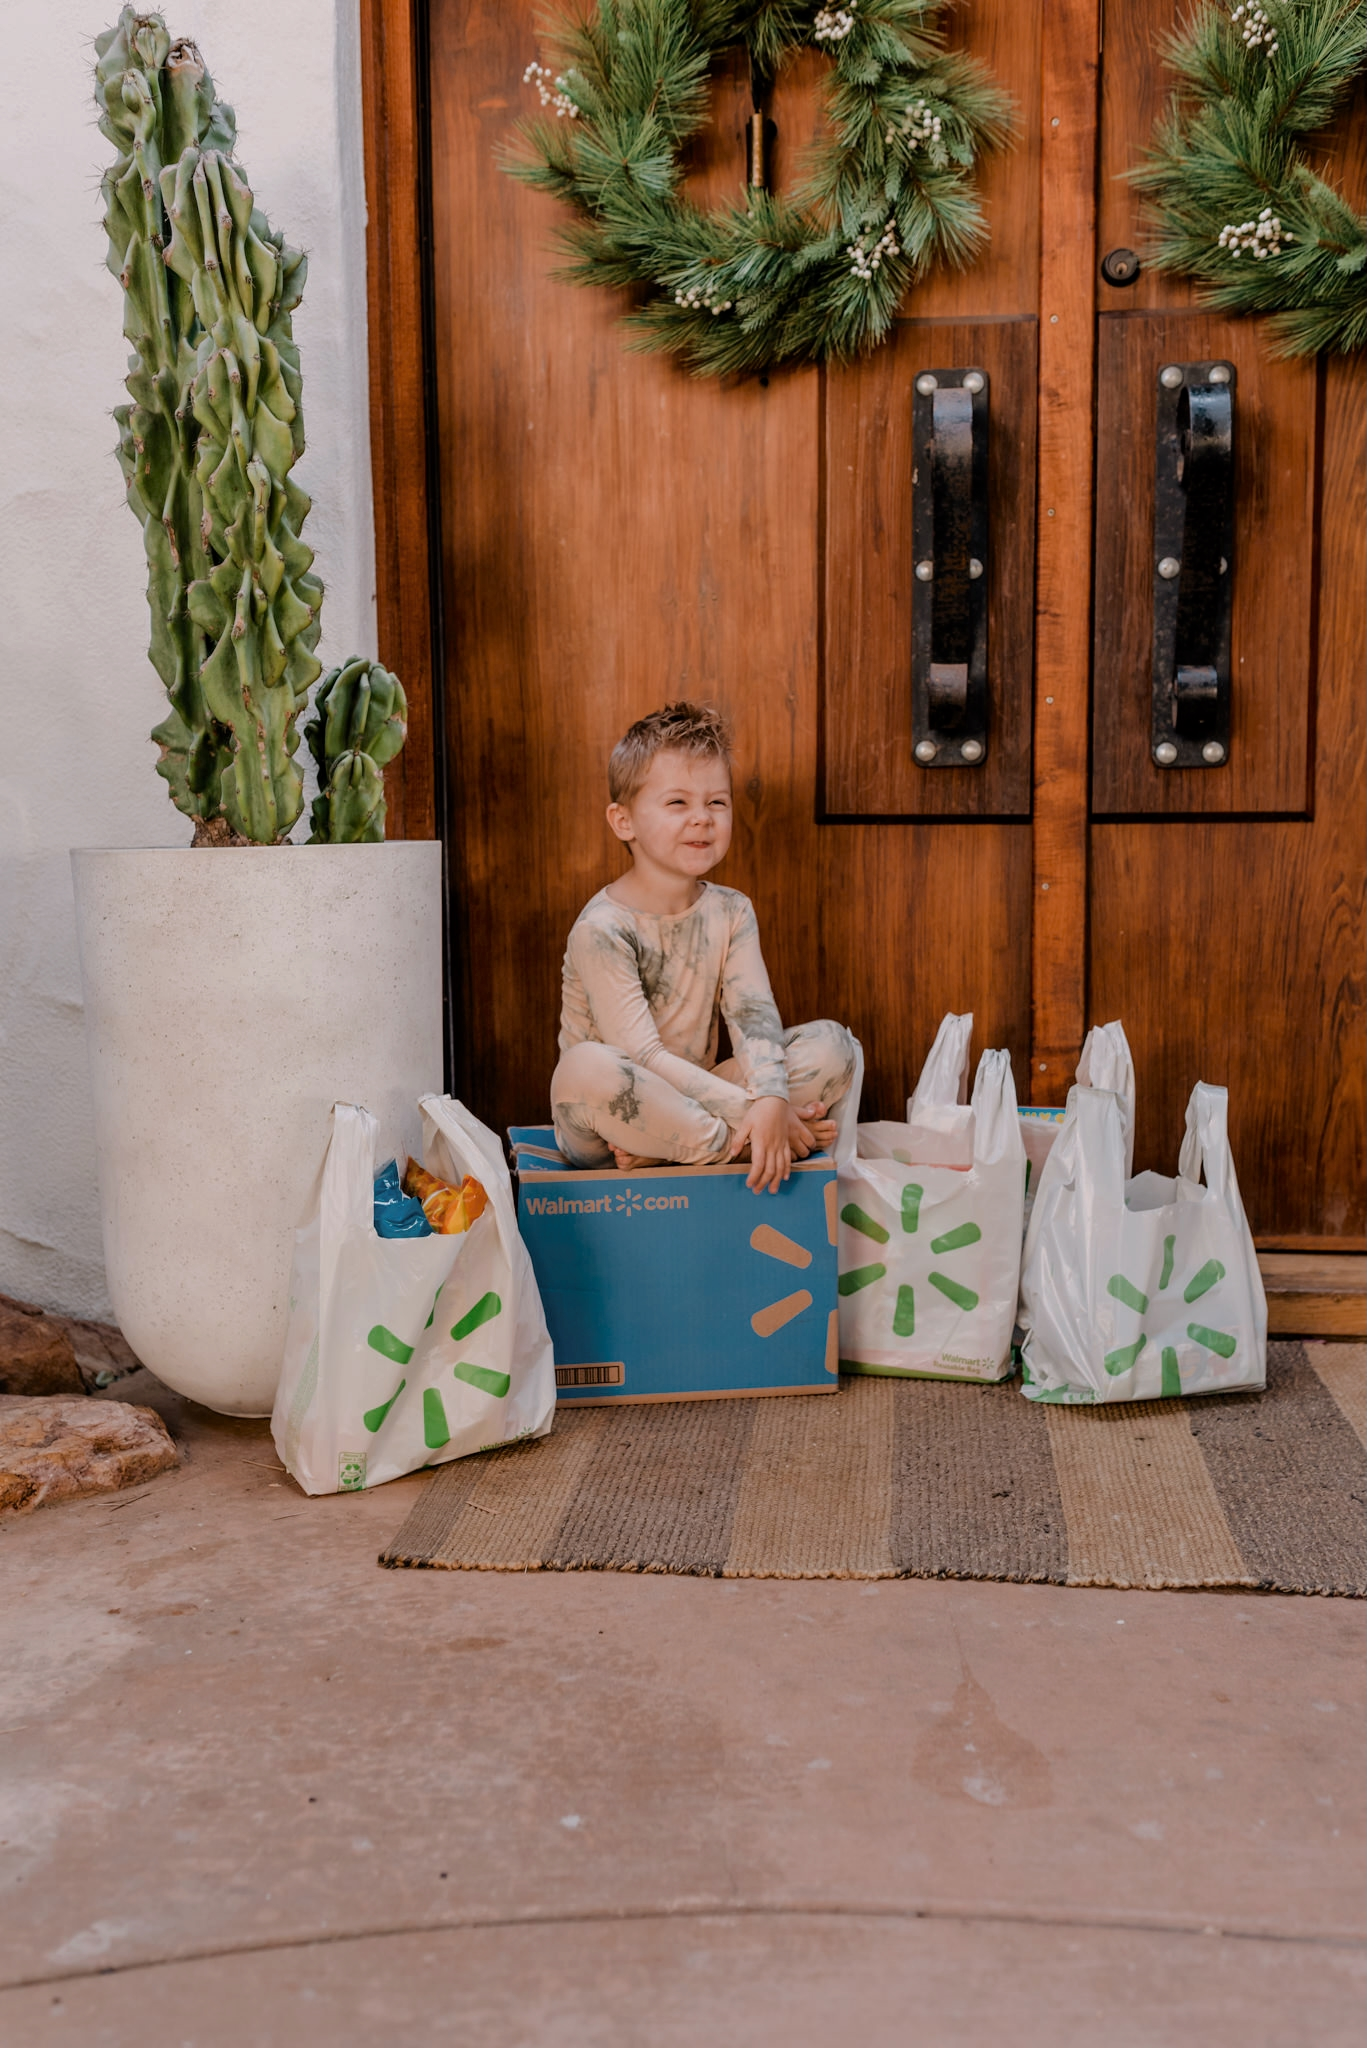 walmart+ |Walmart Membership by popular San Diego lifestyle blog, Navy Grace: image of a young boy sitting outside on top of a Walmart delivery box that's next to some Walmart shopping bags.